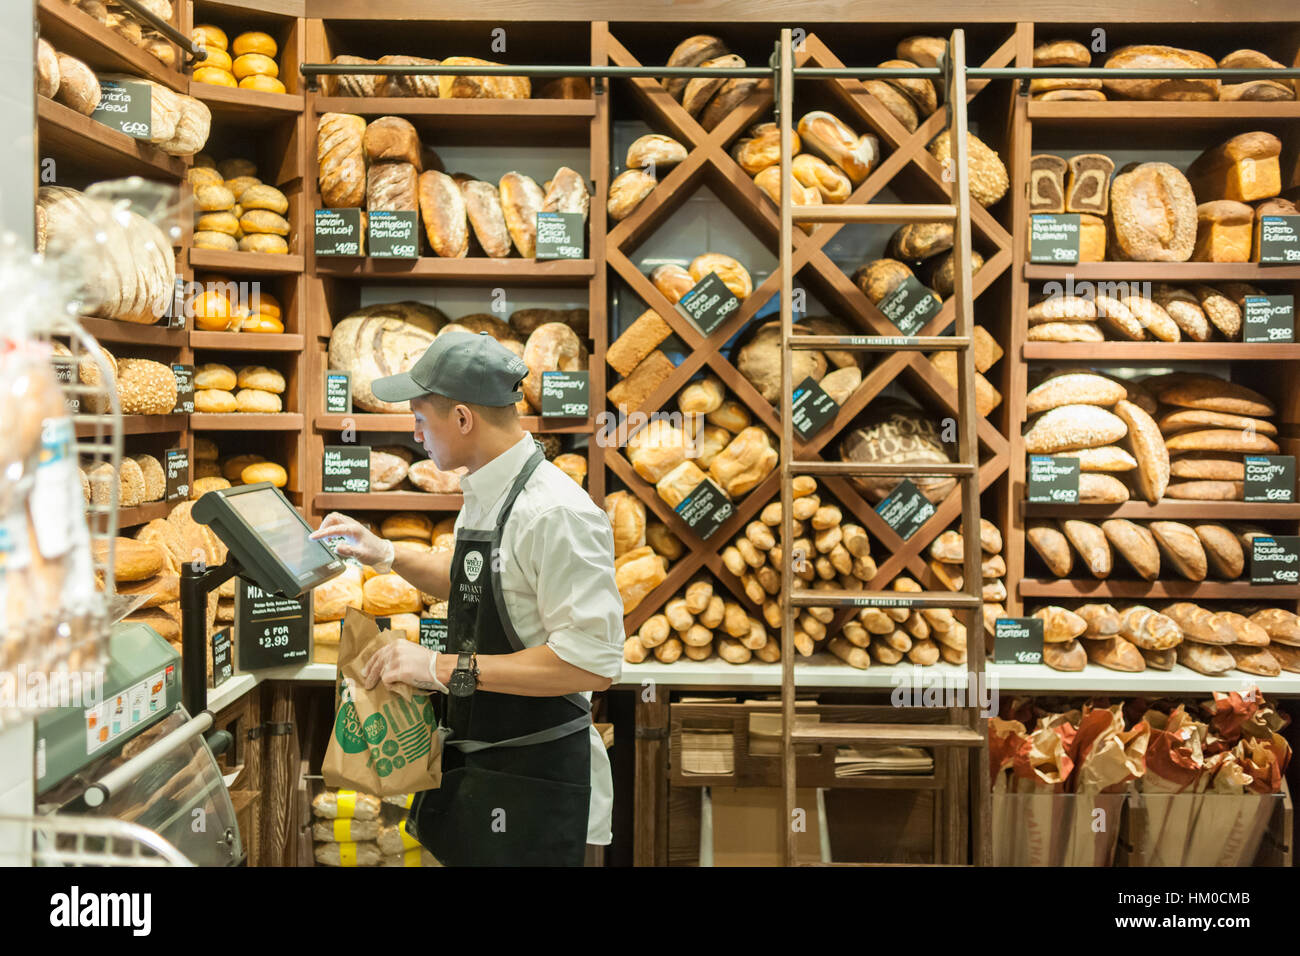 Whole Foods Market Bakery Department